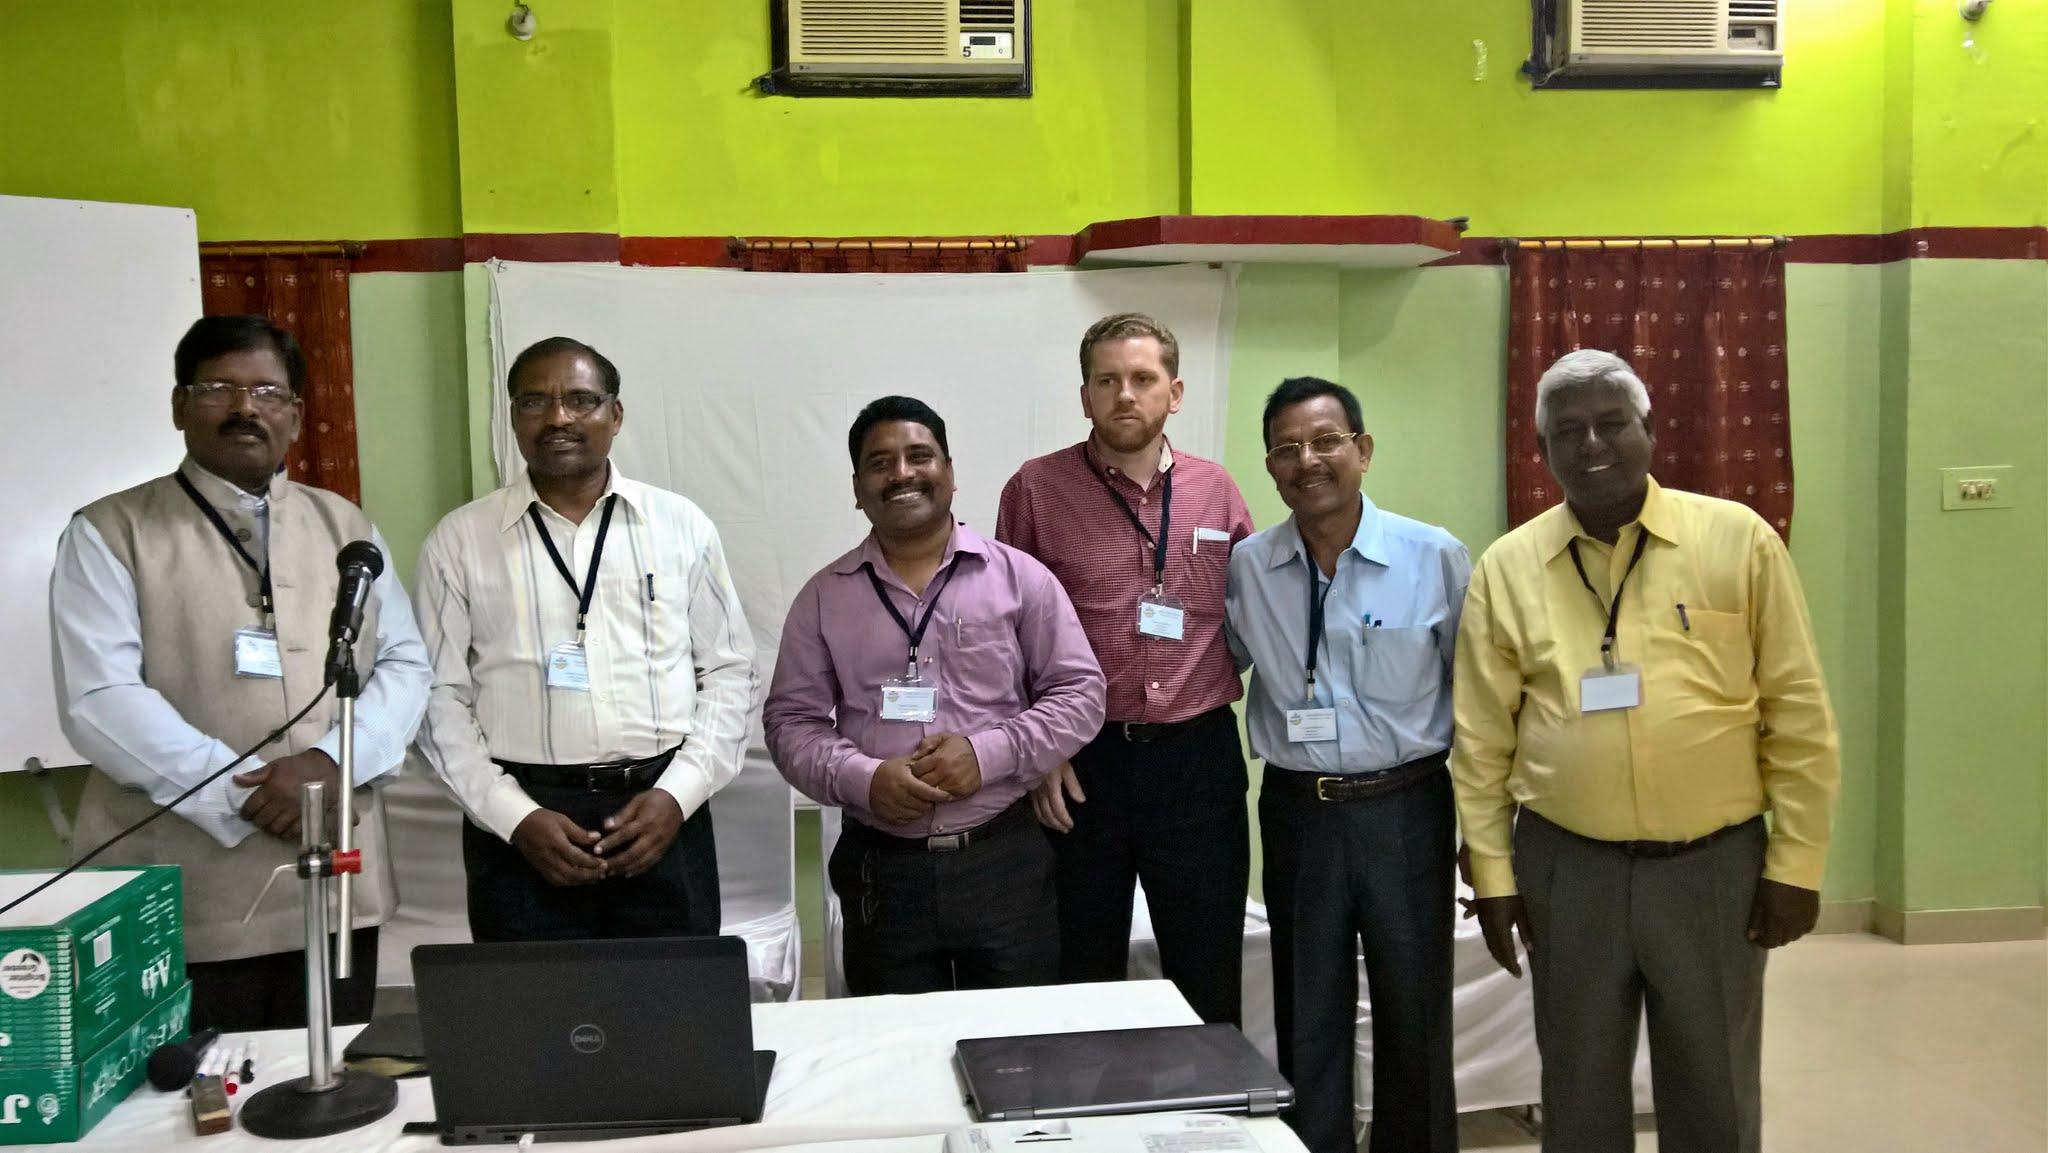 Photo: The MTM Odisha Bible School Committee L-R; Pastor Benoy, Pastor Suresh, Pastor Prabas, Marvin Kauffman, Pastor Pranob. Santa Murtey is not a part of the committee but has been like a father to me for many many years.